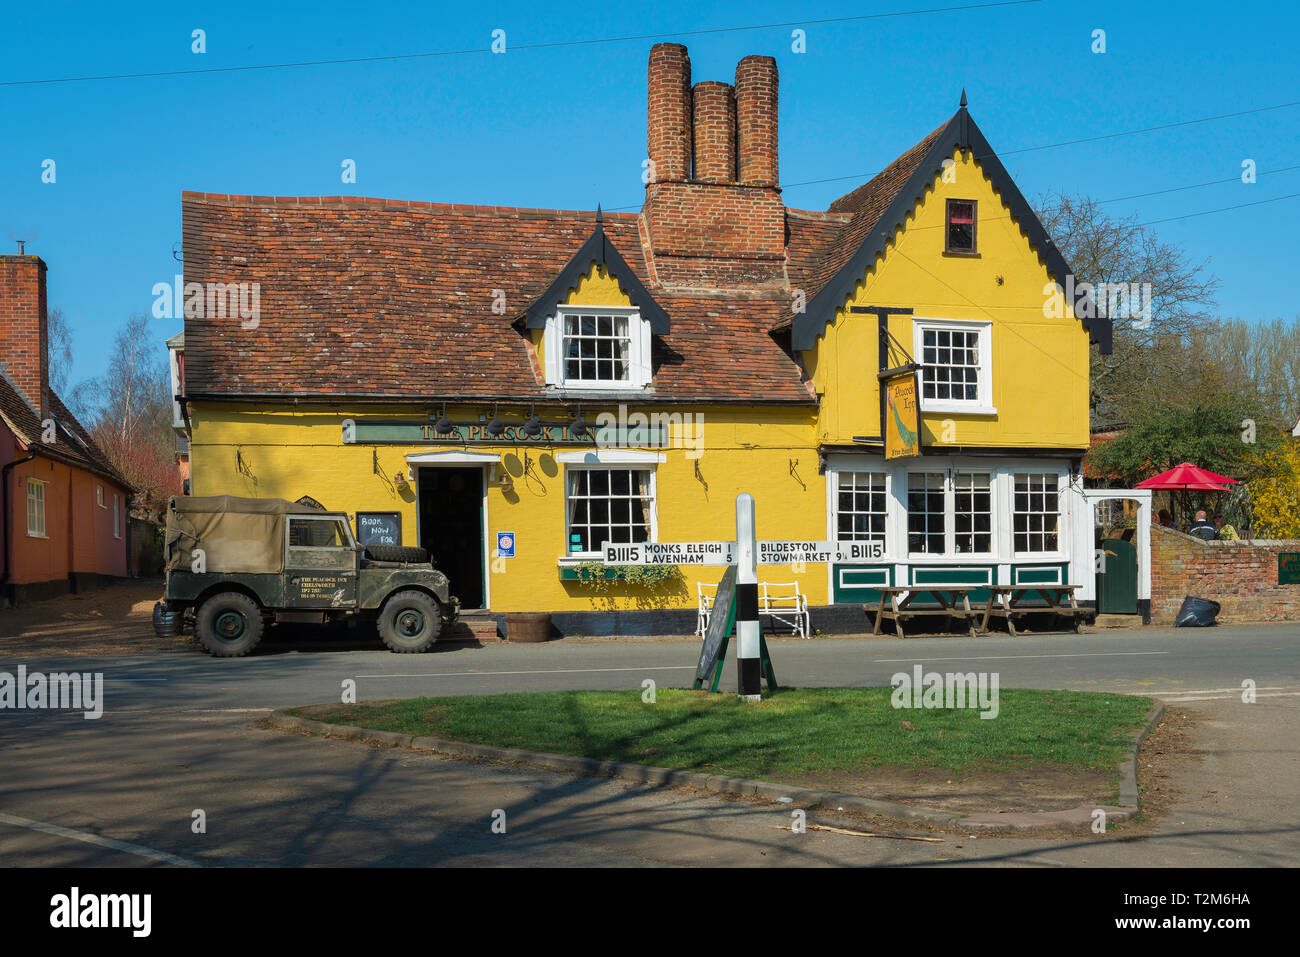 Country pub, The Peacock Inn public house sited in The Street in the centre of the Suffolk village of Chelsworth, Babergh District, Suffolk, UK - Stock Image